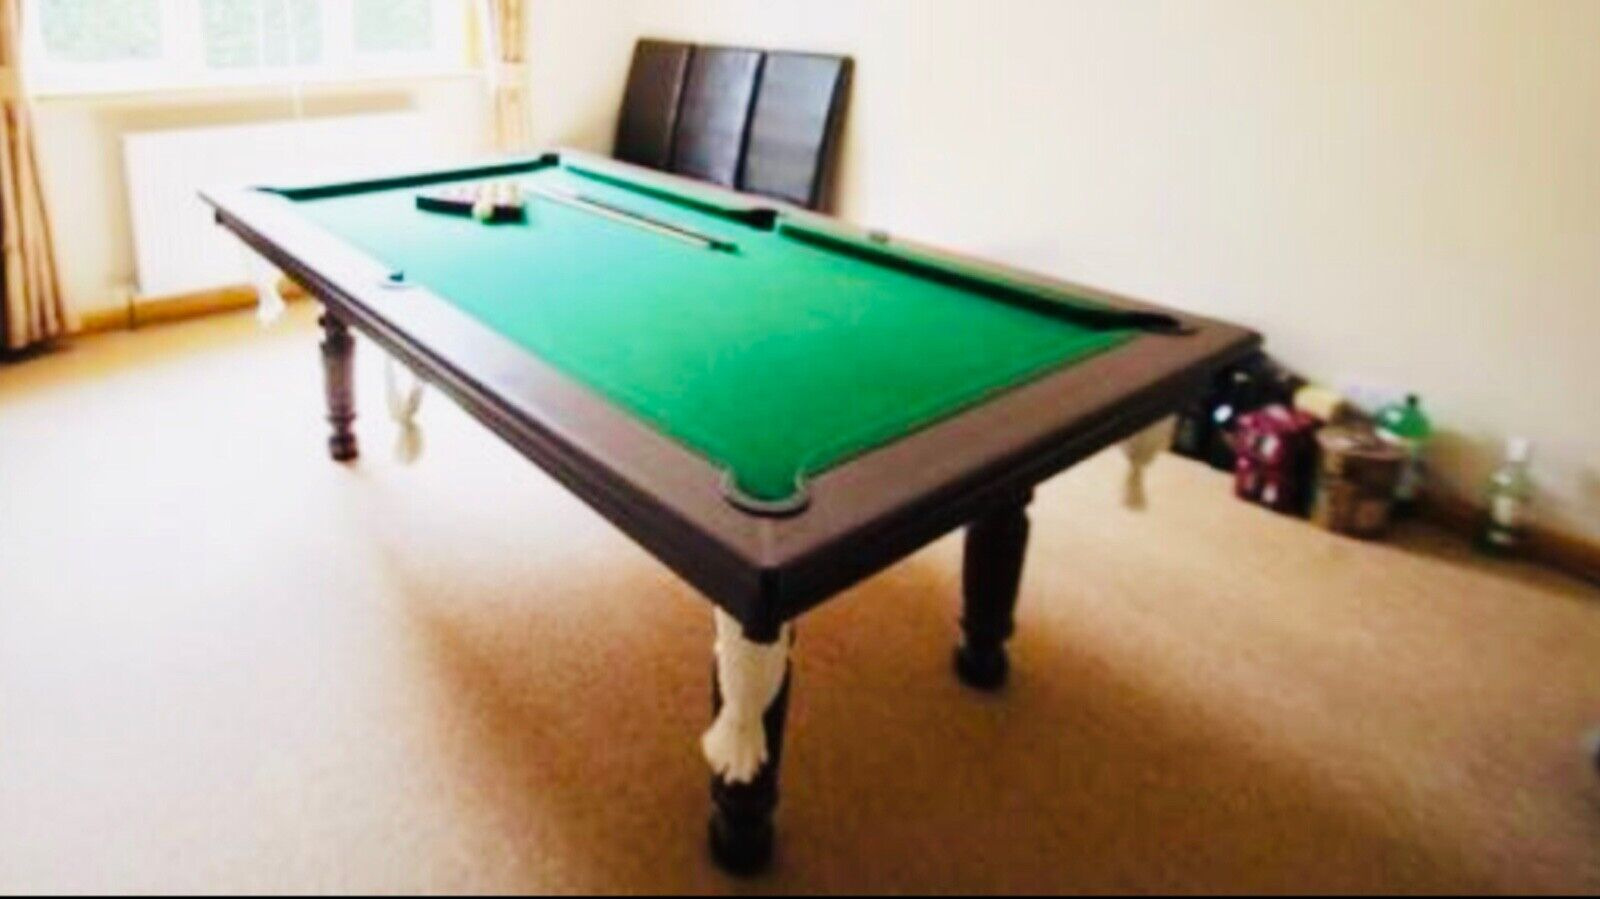 Pool table 7ft x 4ft also a dining table with 4 chairs (also 7 cues/balls/chalk)